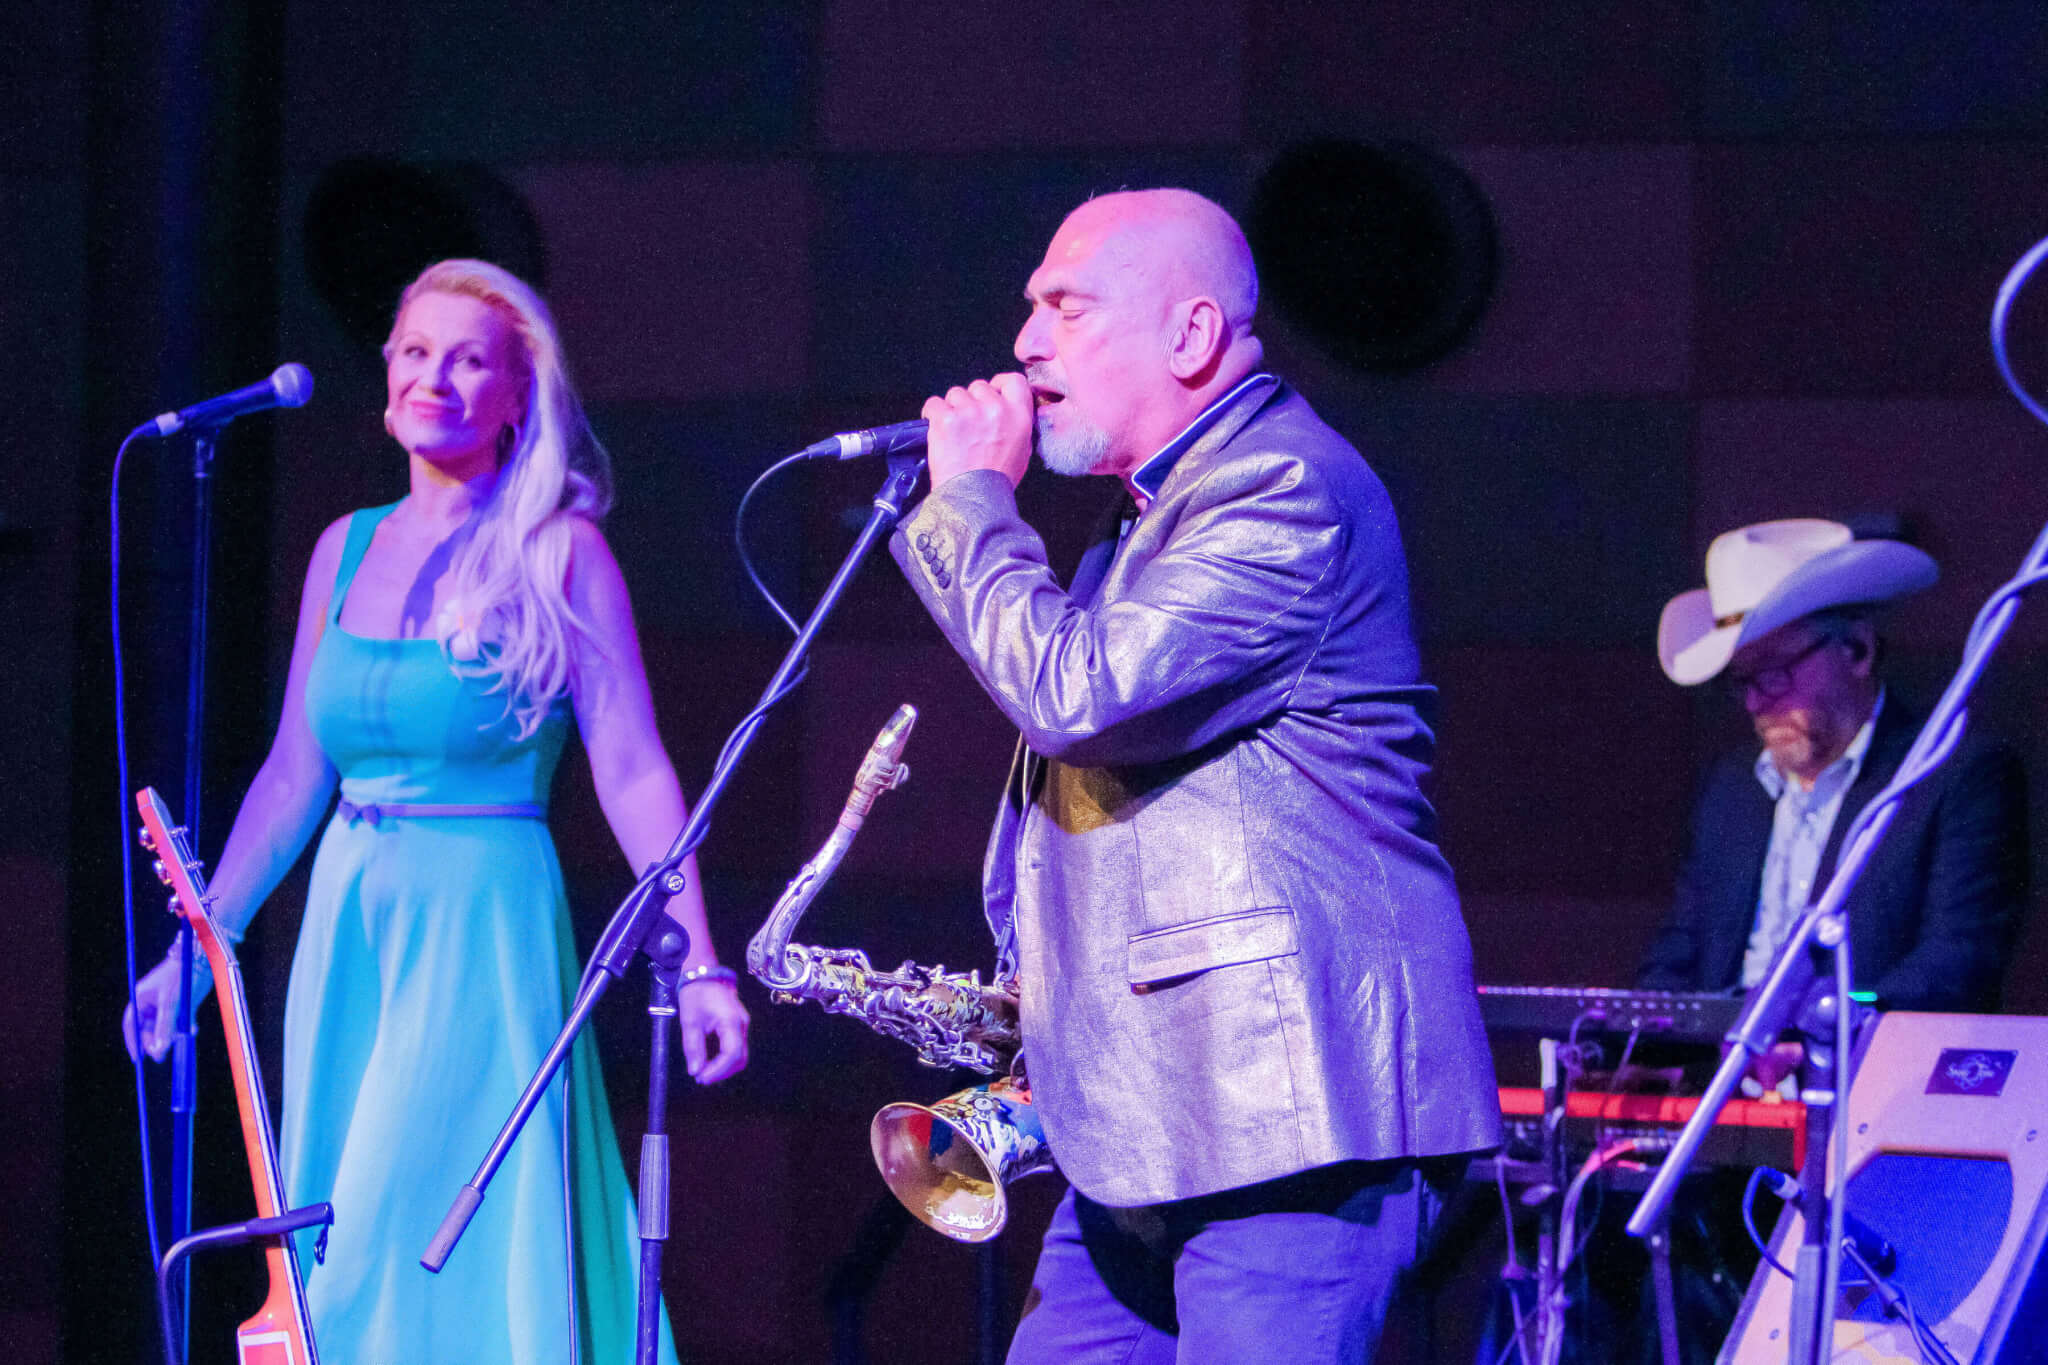 oe Camilleri & the Black Sorrows - Australian Recording Artist